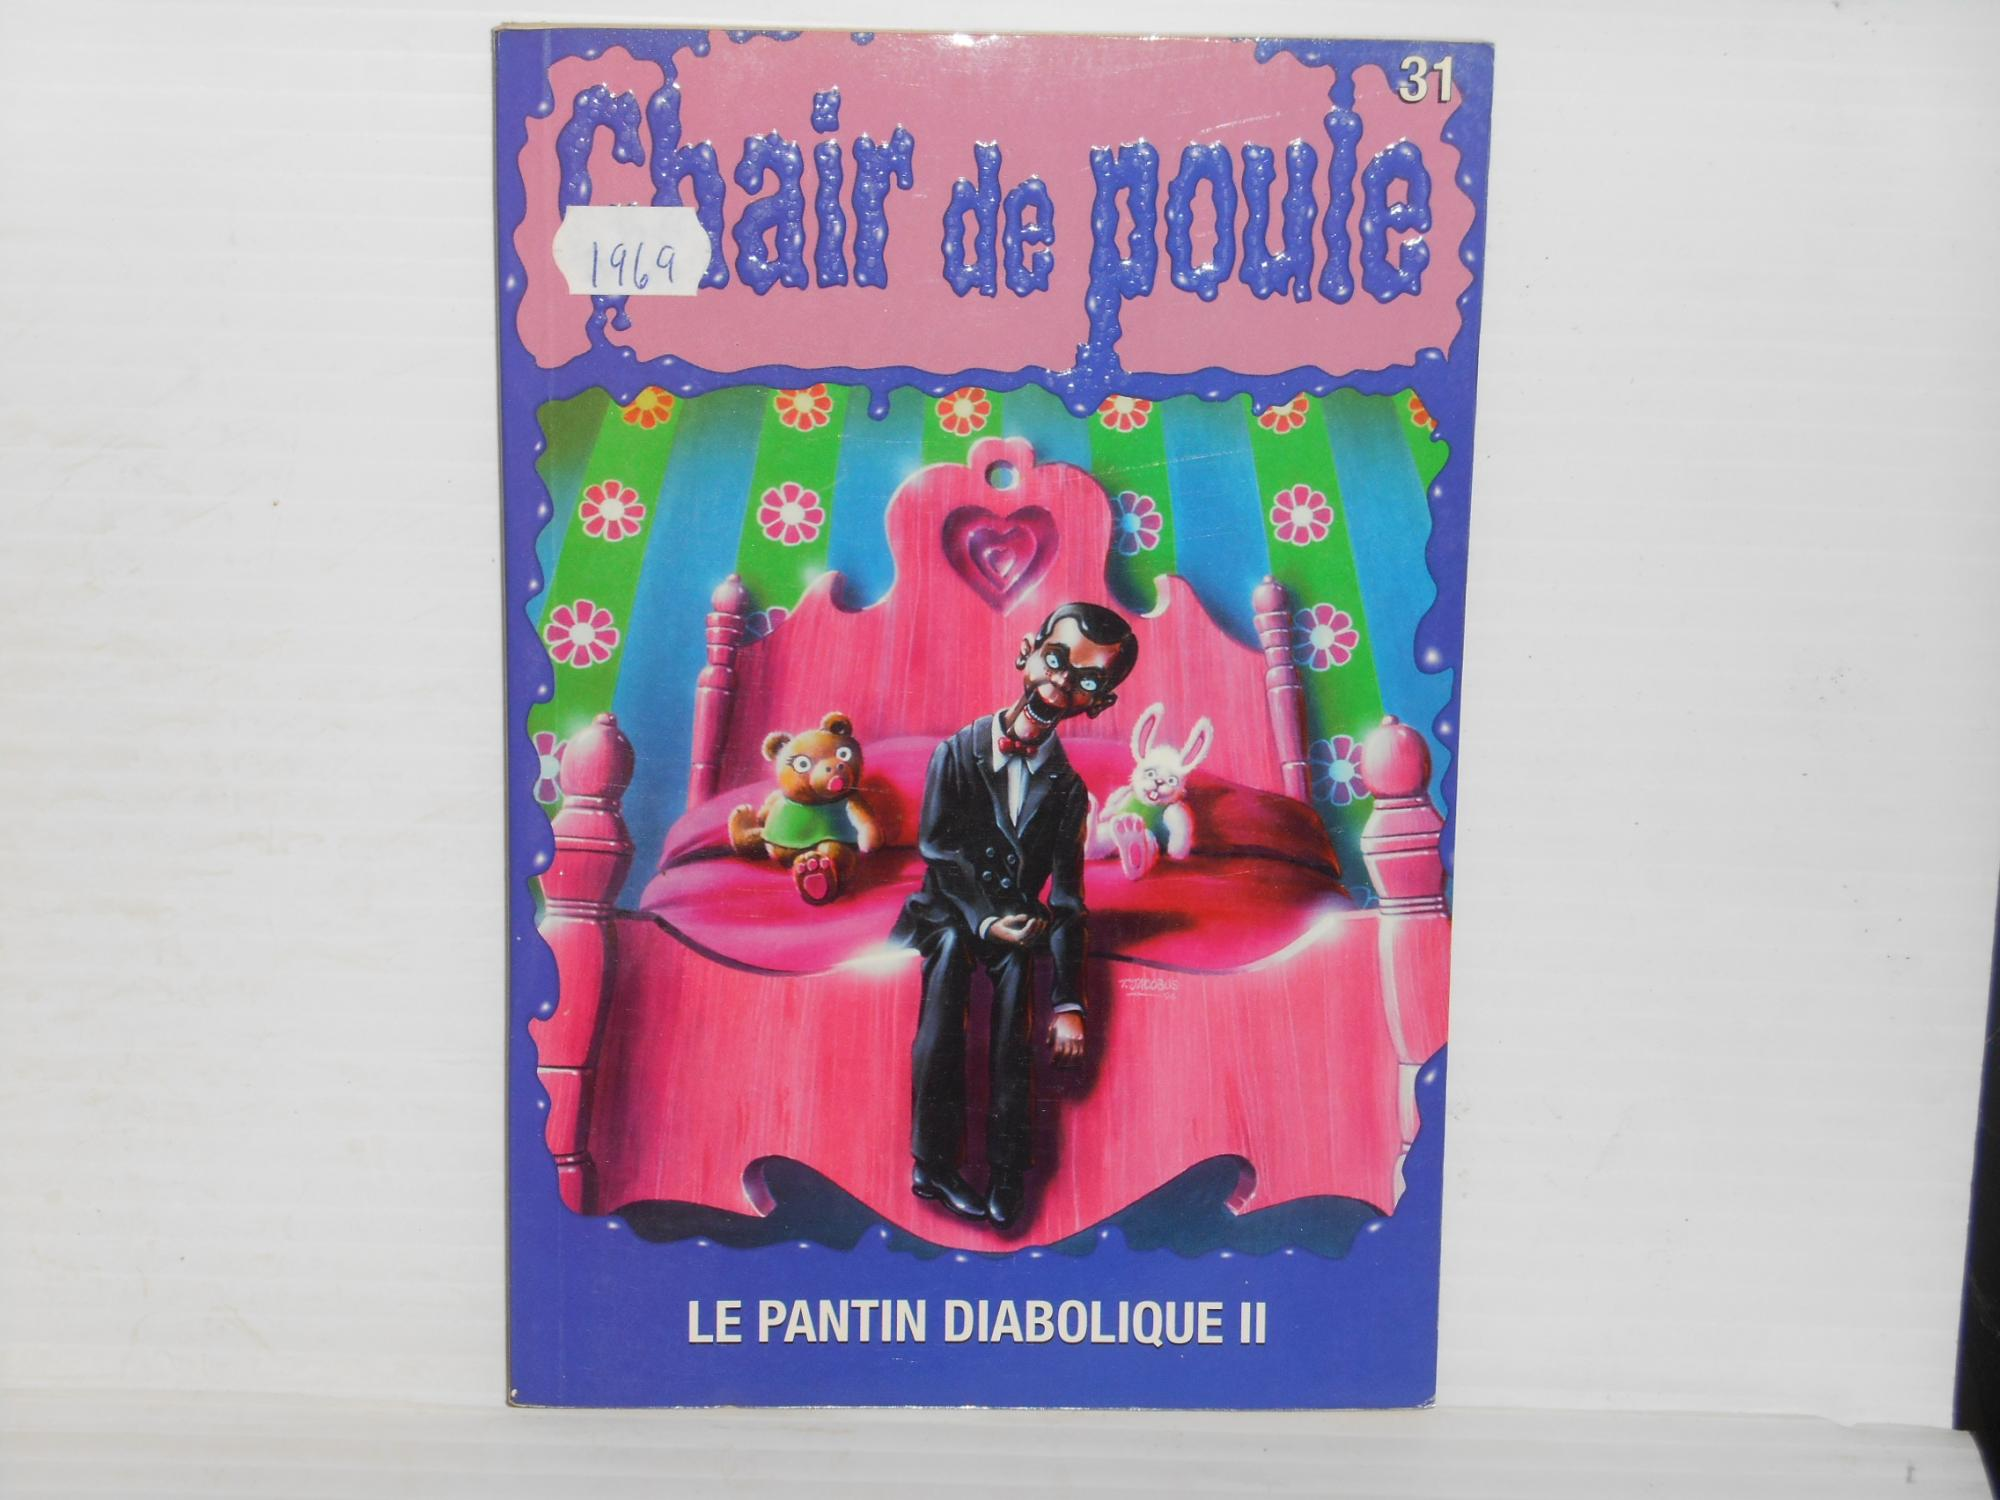 Chair De Poule 31 Le Pantin Diabolique Ii By Stine R L